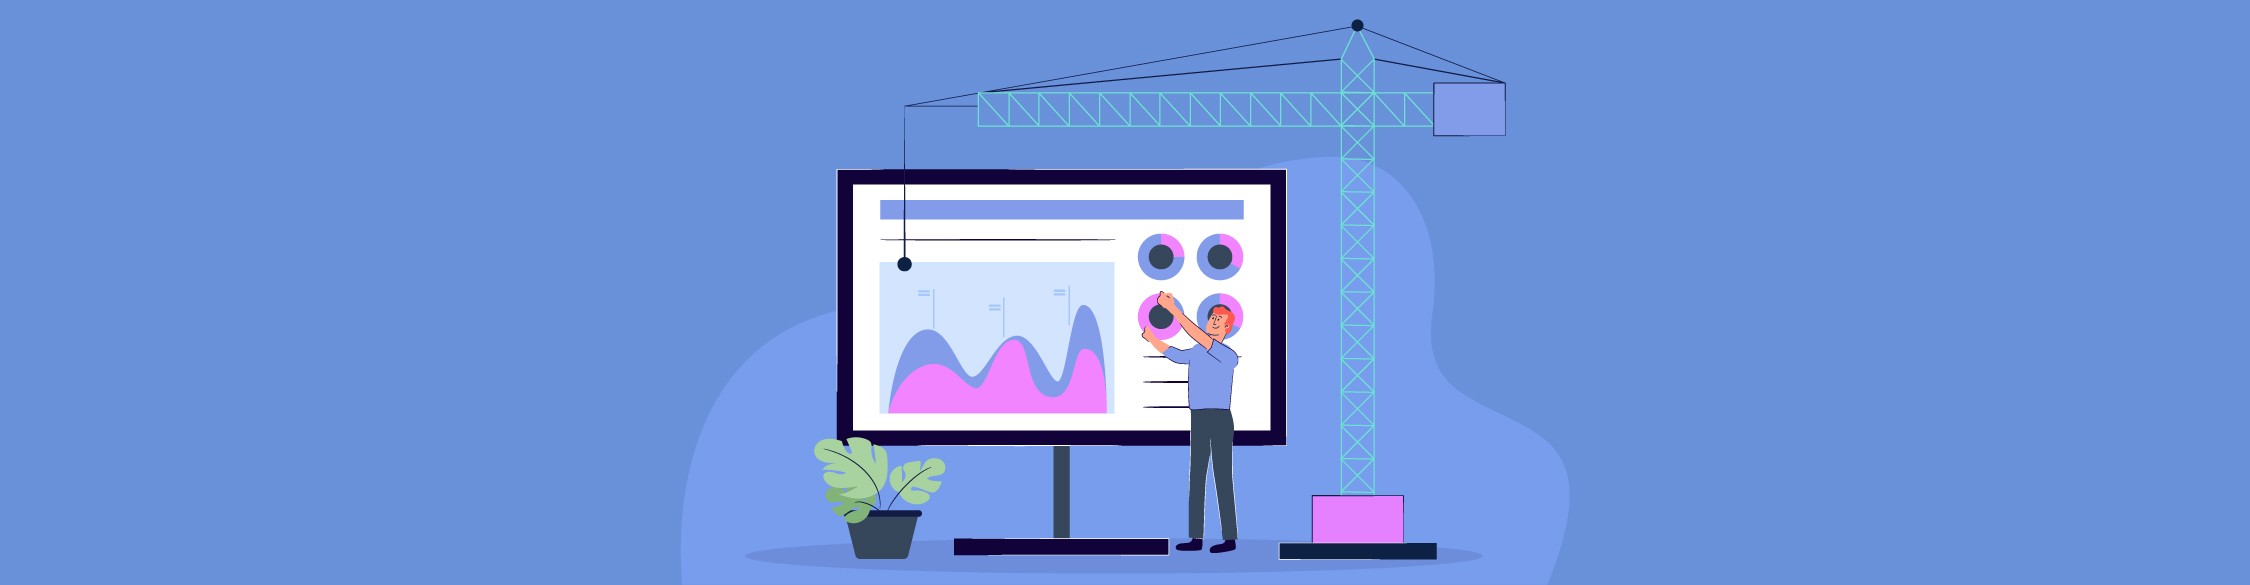 How to Make an Effective Presentation (Guide, Tips & Examples)